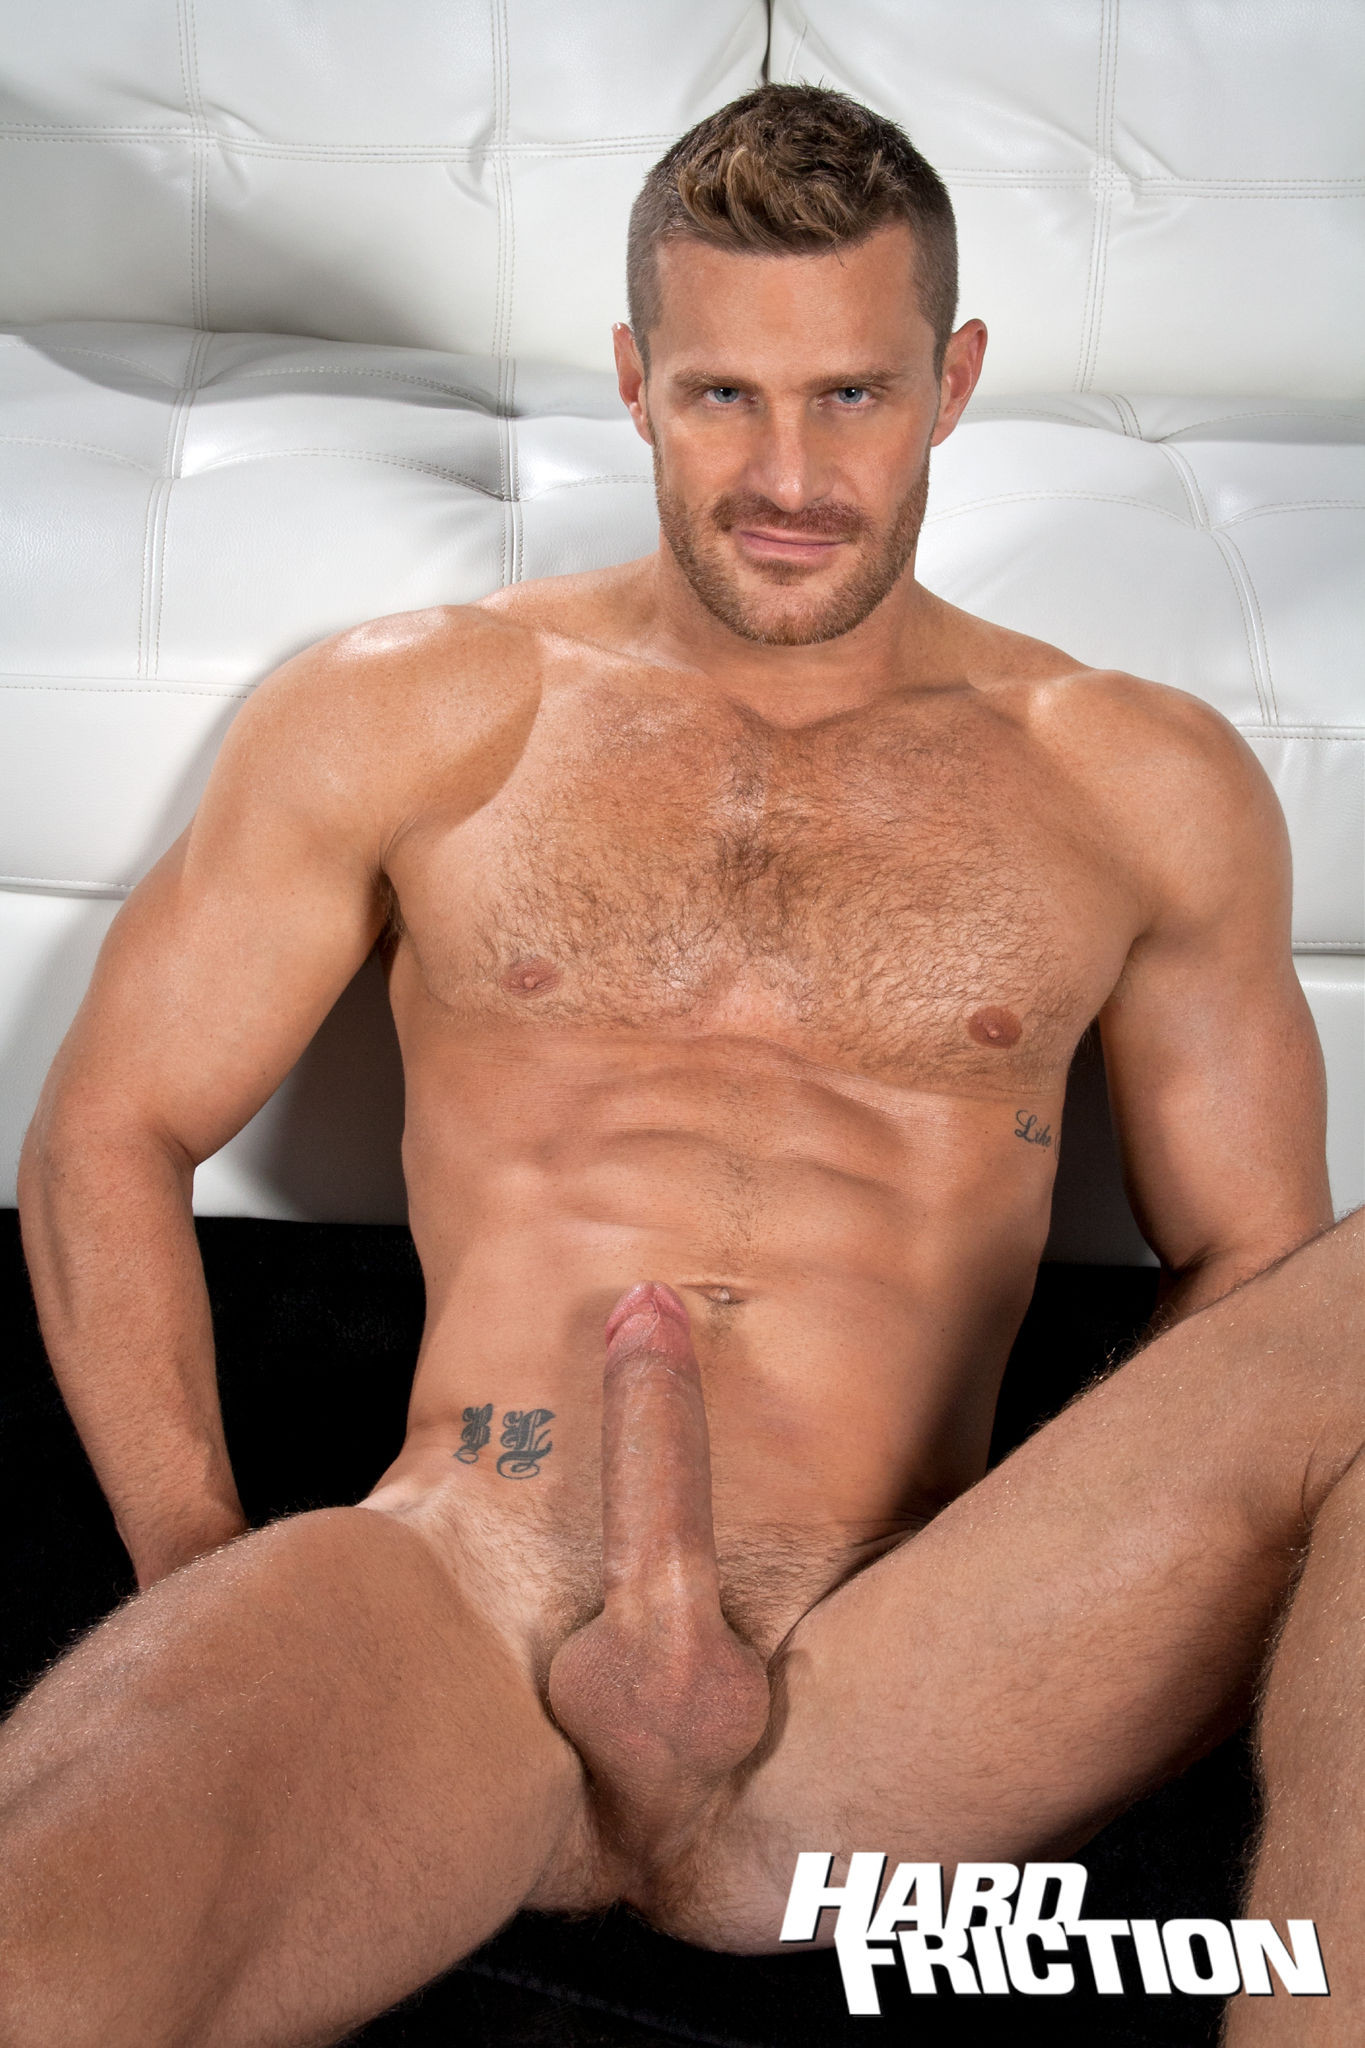 Clip group gay sex iran tag teamed in the